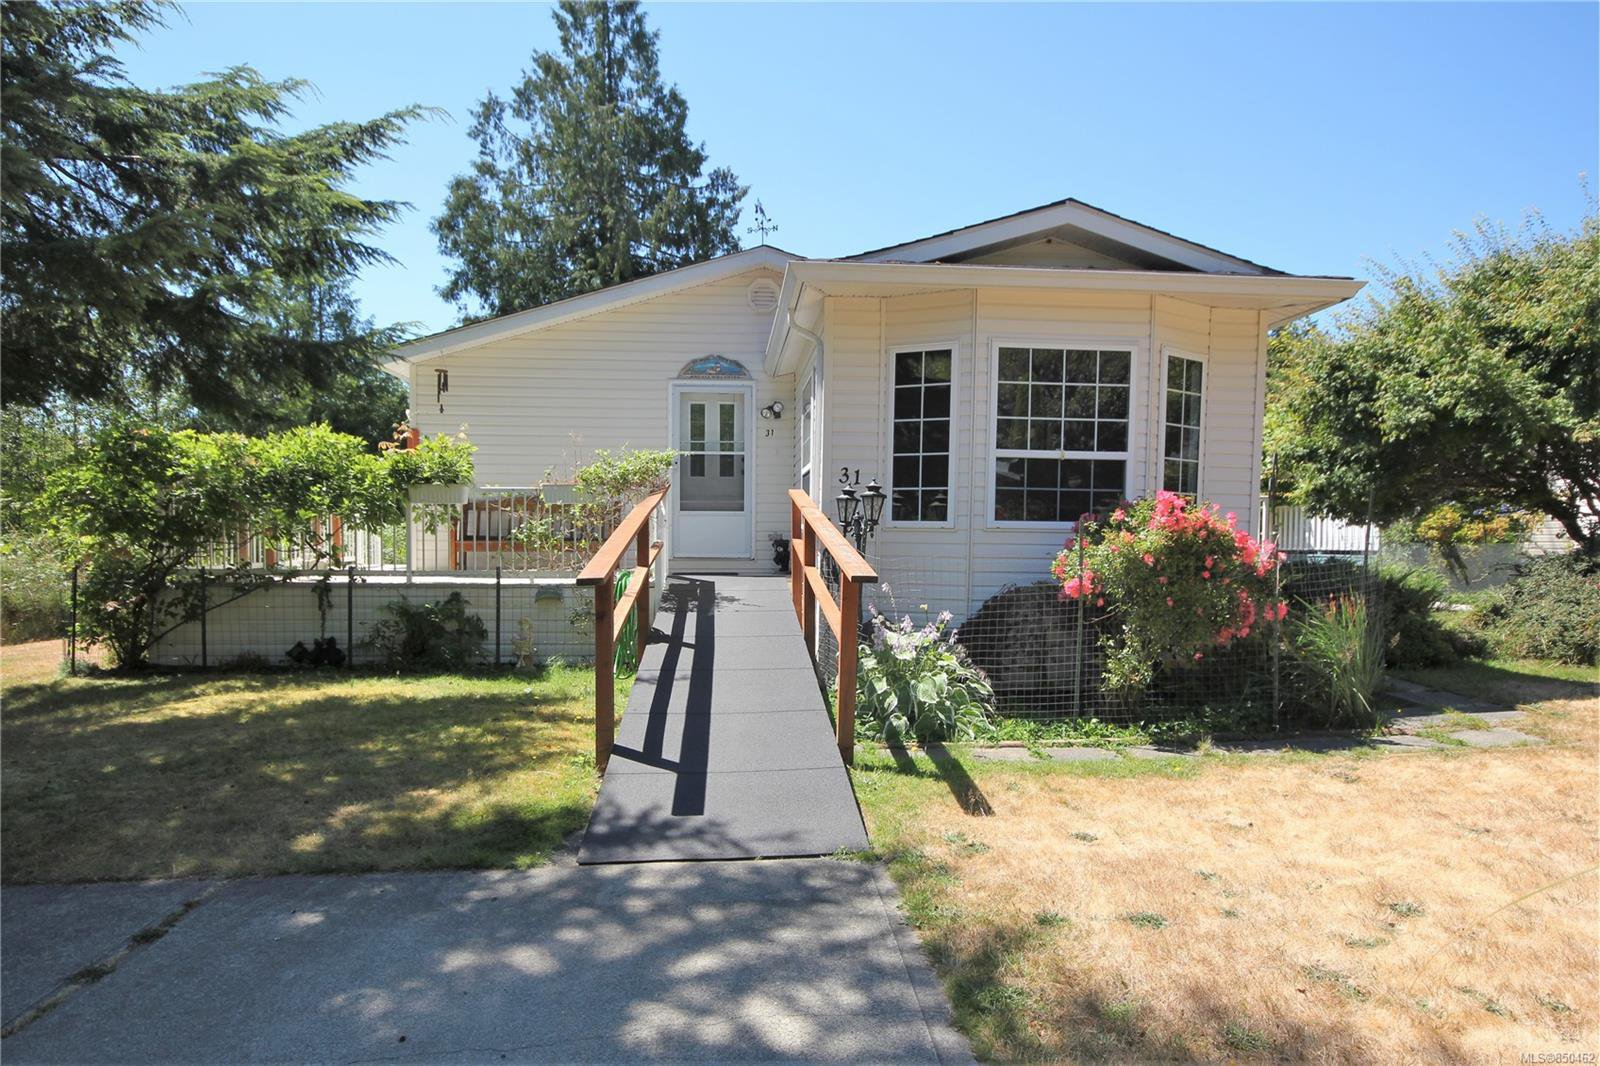 Main Photo: 31 2357 Sooke River Rd in : Sk Sooke River Manufactured Home for sale (Sooke)  : MLS®# 850462